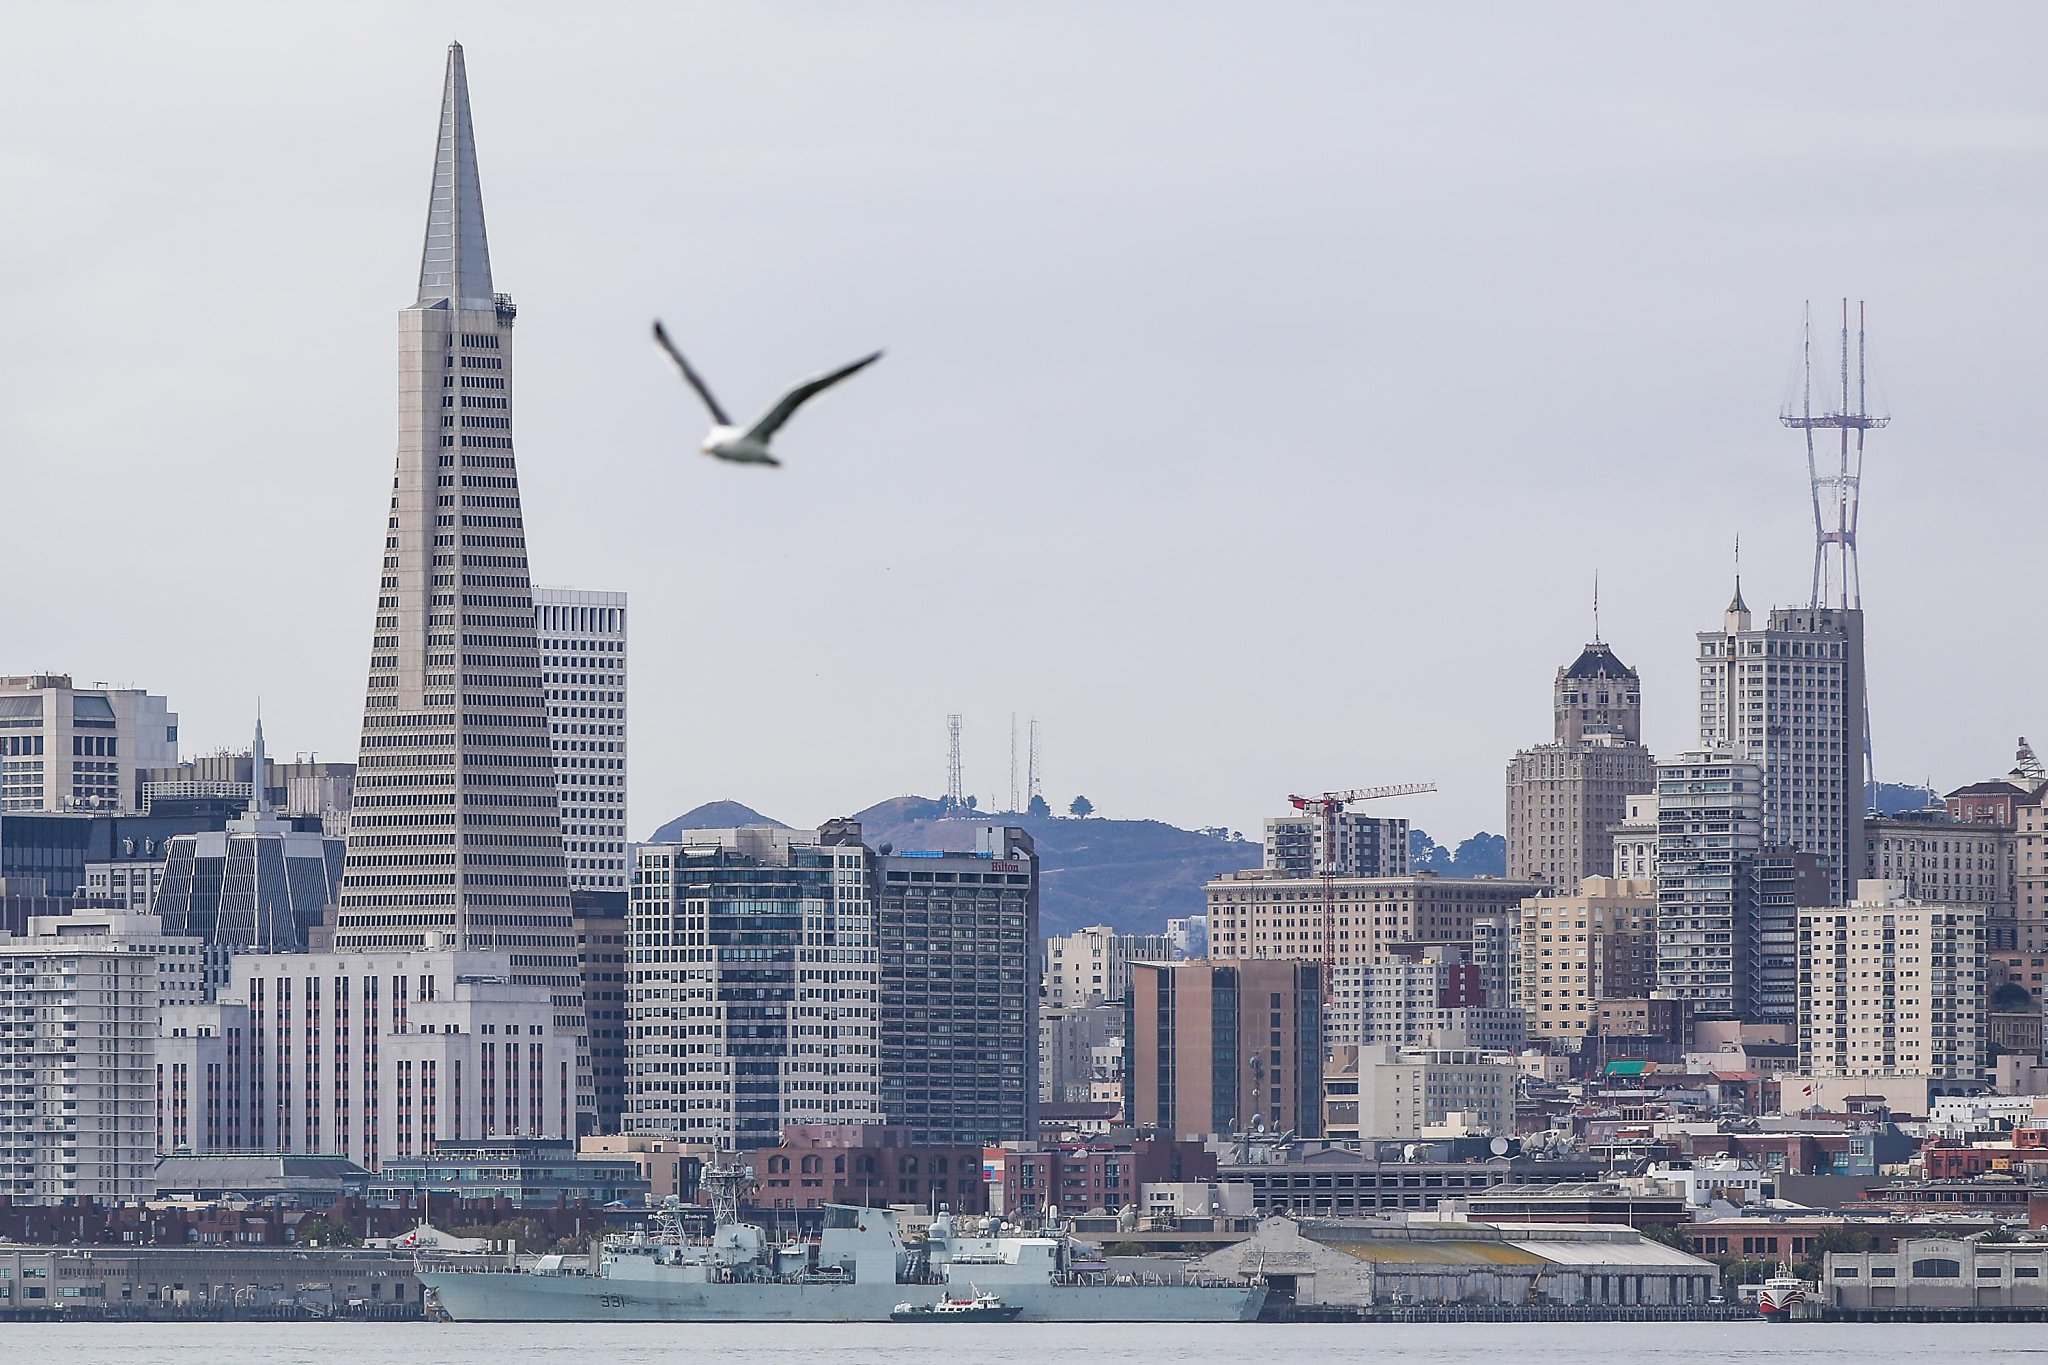 Report: The most expensive counties to rent in the US are all in the Bay Area